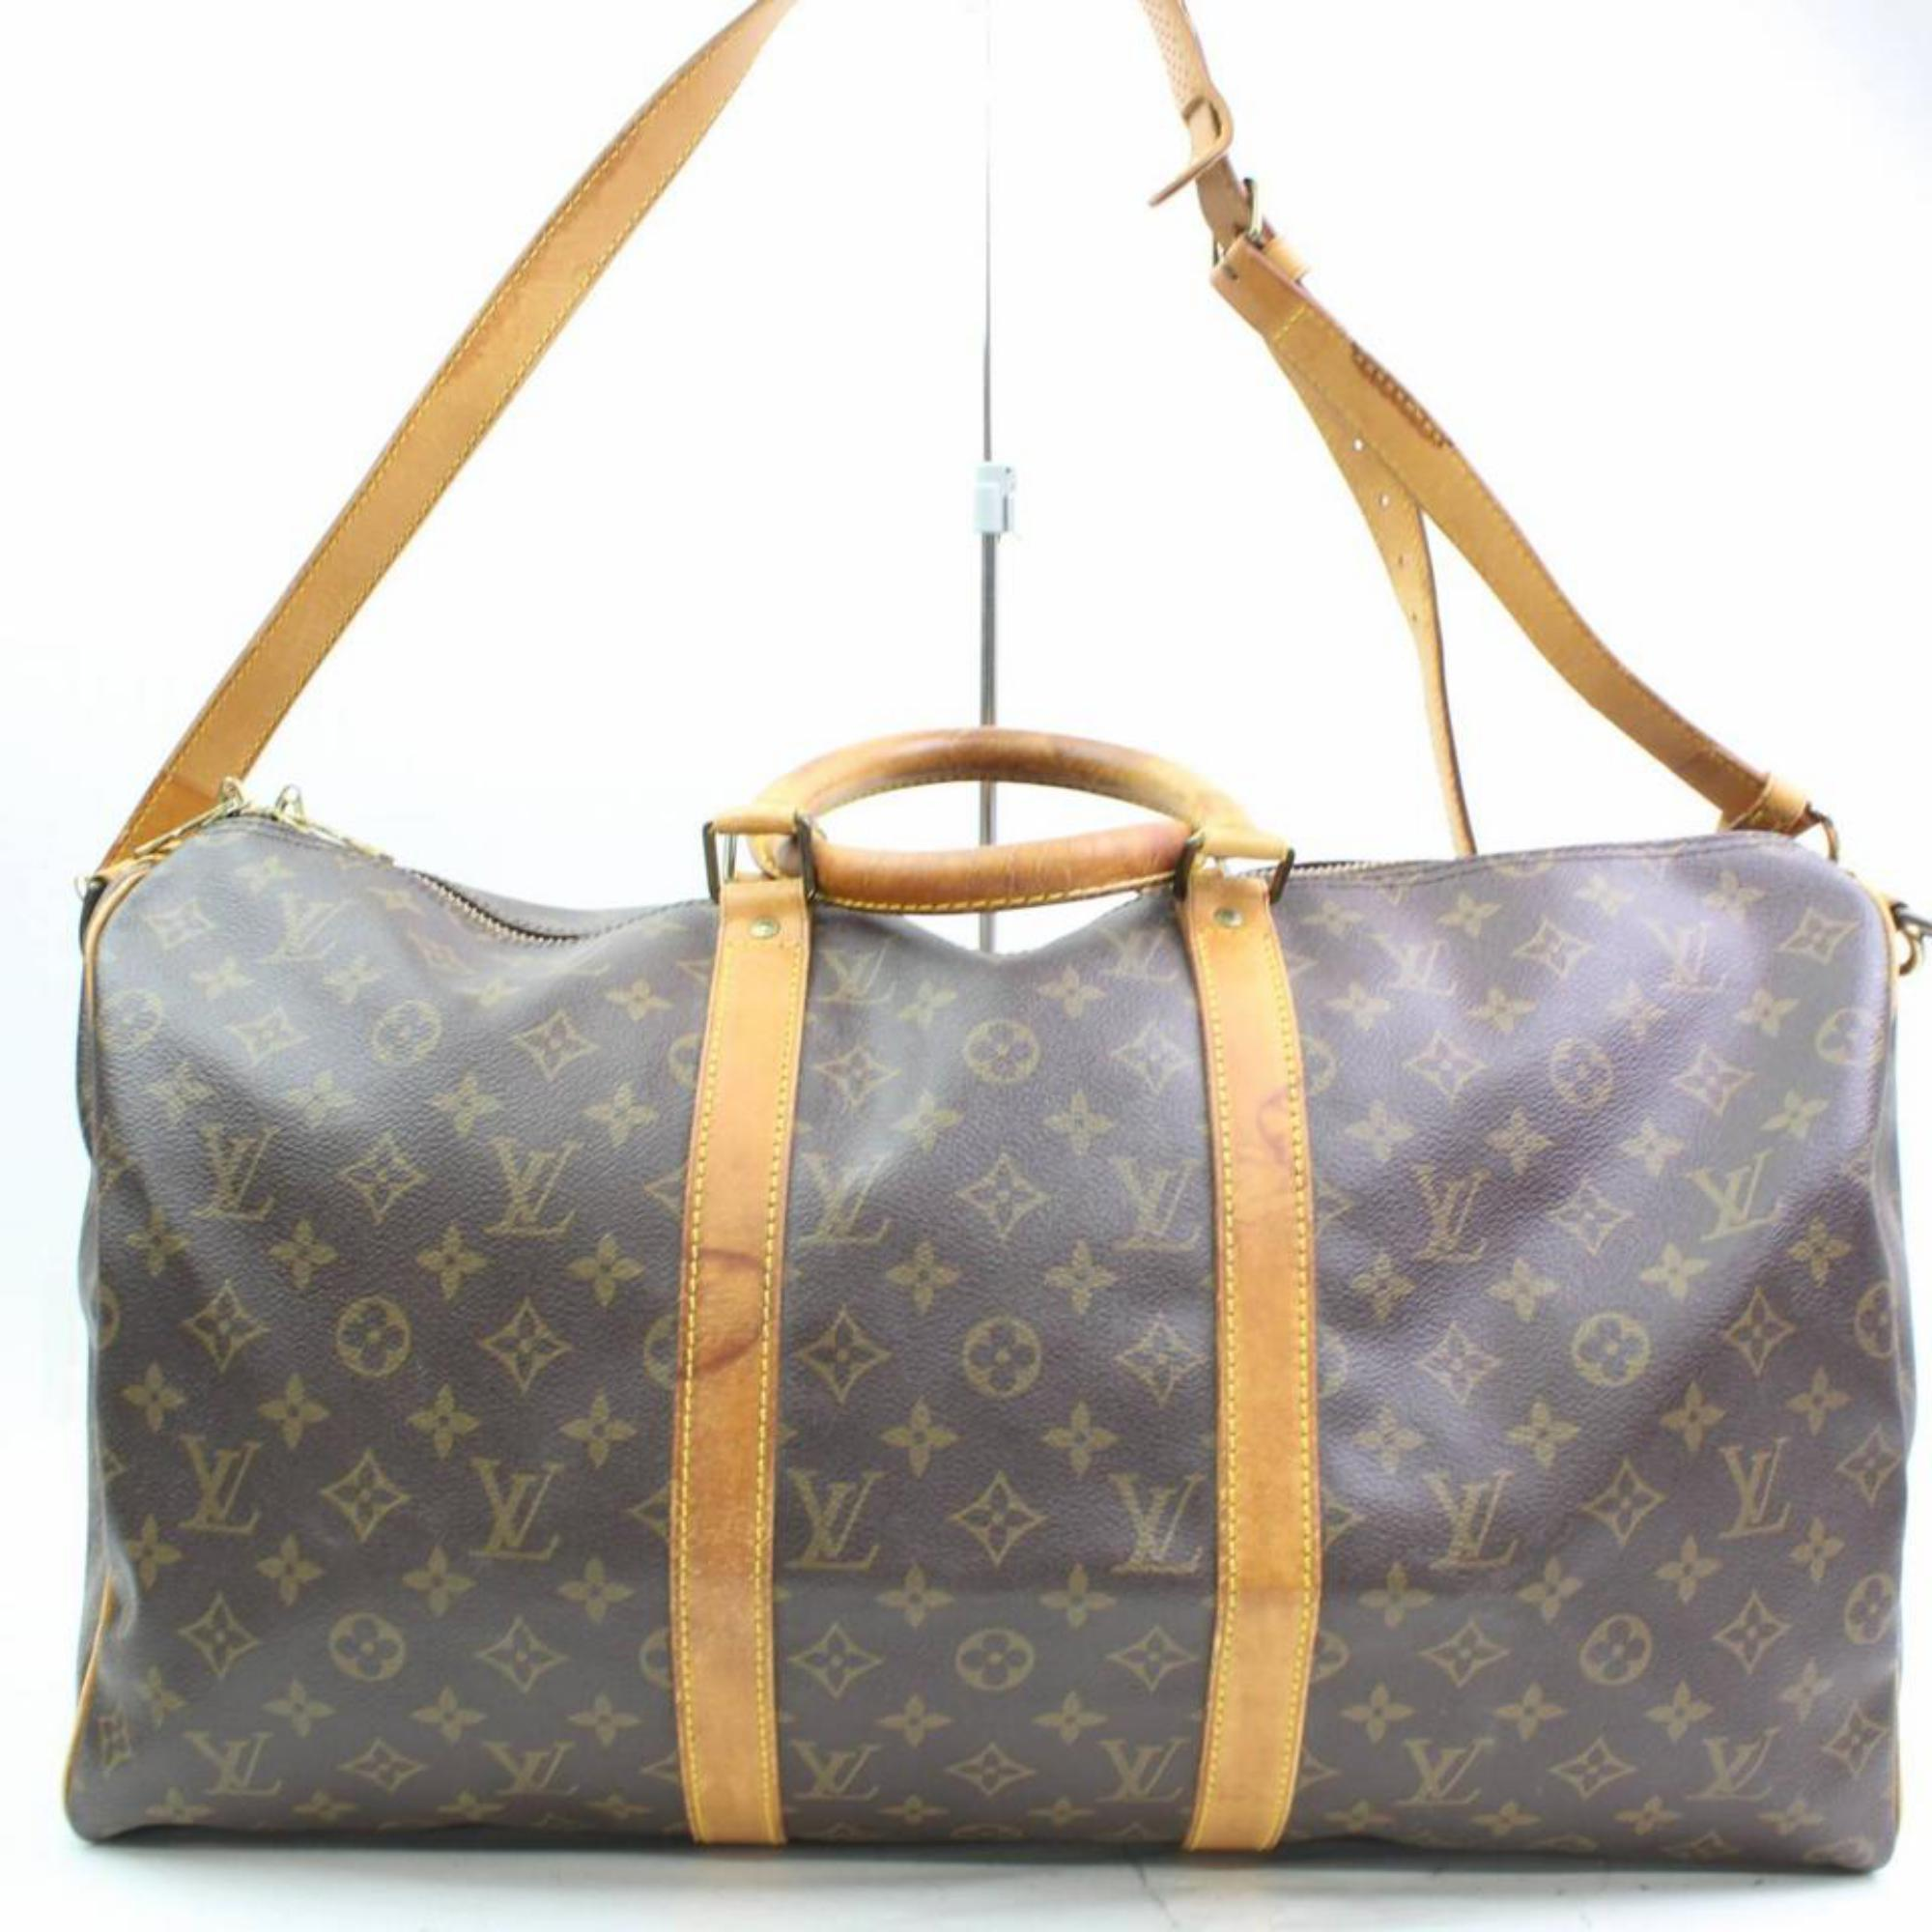 4416d67c518a Louis Vuitton Keepall Bandouliere 50 866534 Coated Canvas Weekend Travel Bag  For Sale at 1stdibs